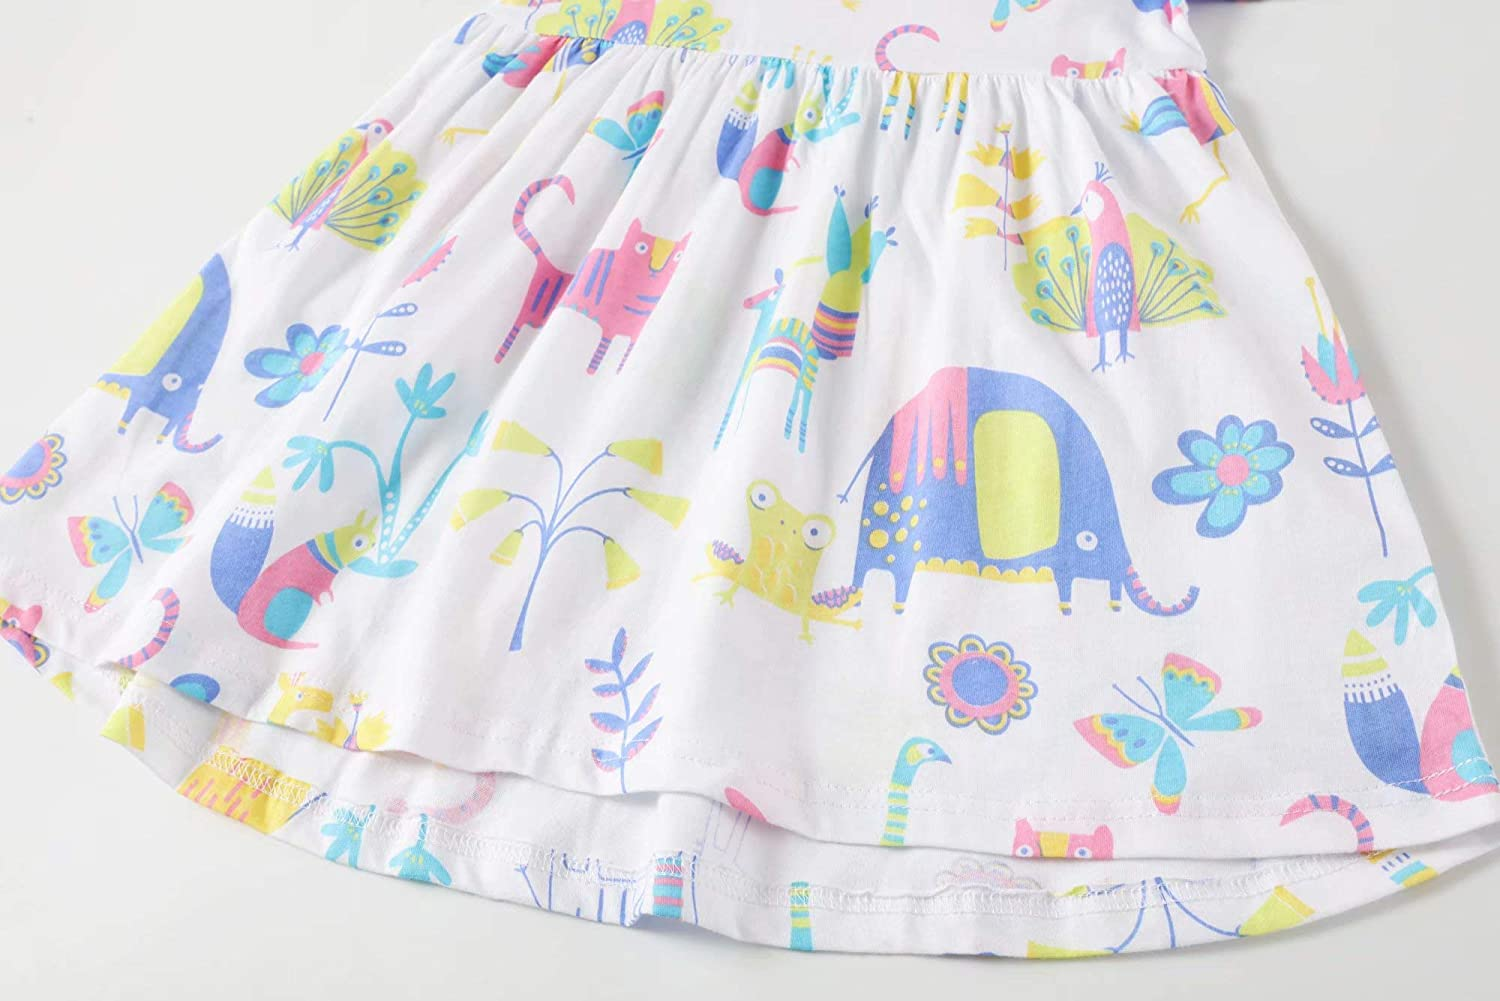 BIBNice Toddler Girl Dresses Kids Summer Cotton Casual Dress Size 2Y-9Y